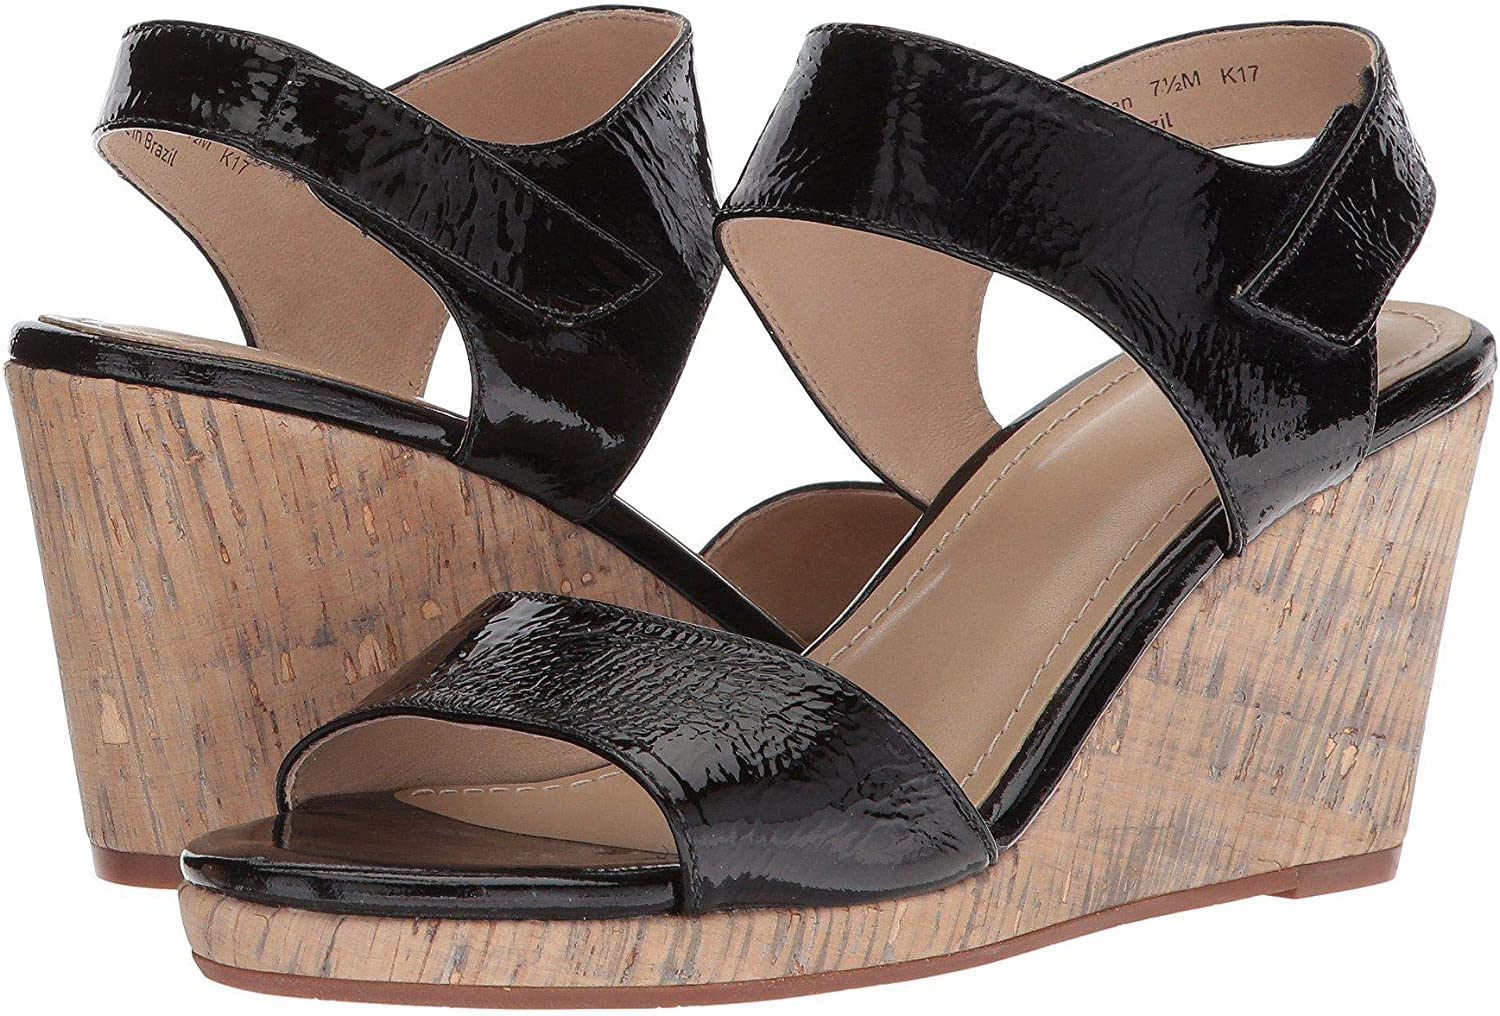 Johnston & Murphy Womens Glenna Leather Open Toe Casual Platform Sandals